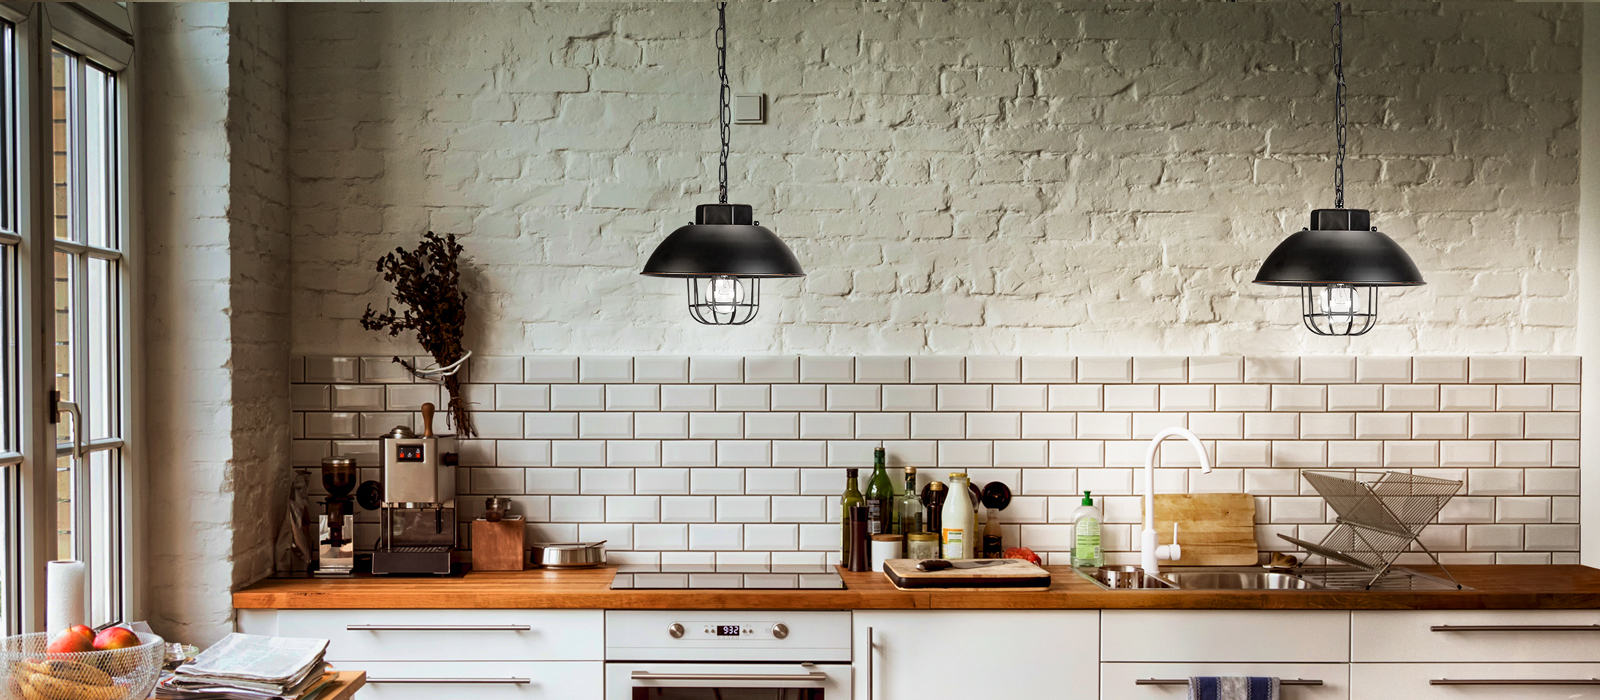 Kitchen Inspiration Lighting RONA - Kitchen light fixtures rona